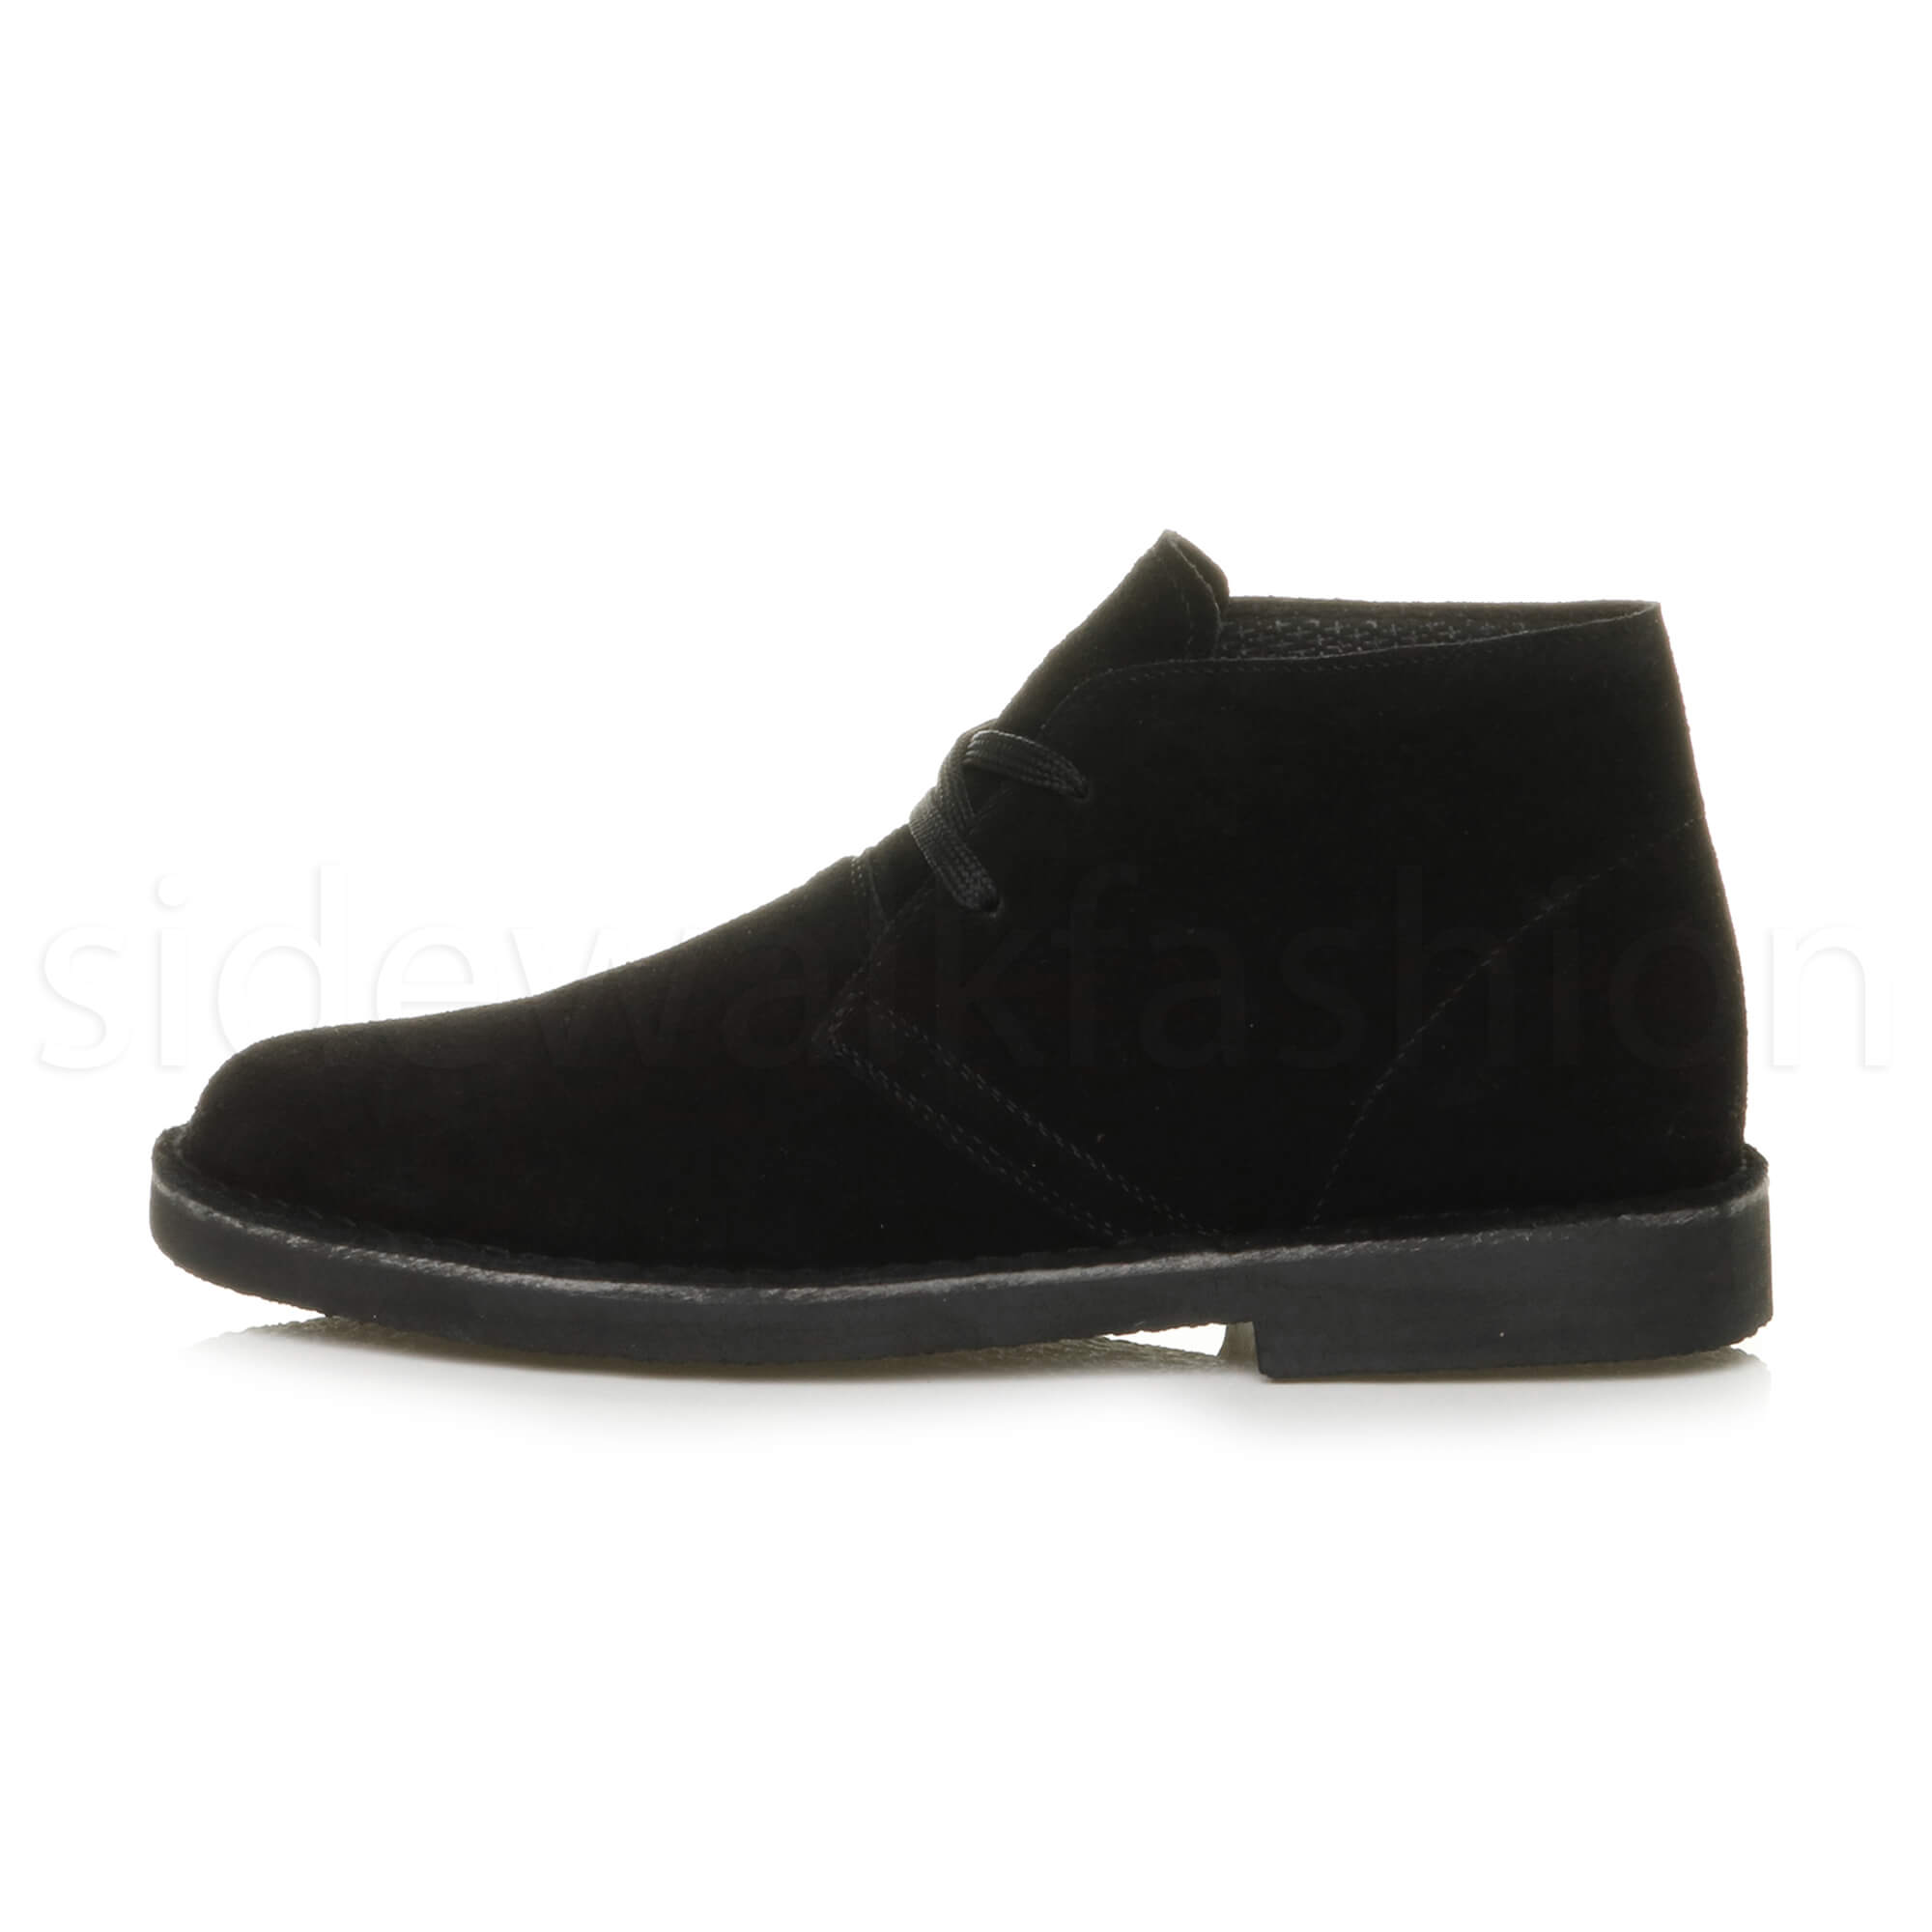 Mens-lace-up-rubber-sole-suede-ankle-chukka-desert-boots-classic-shoes-size thumbnail 3